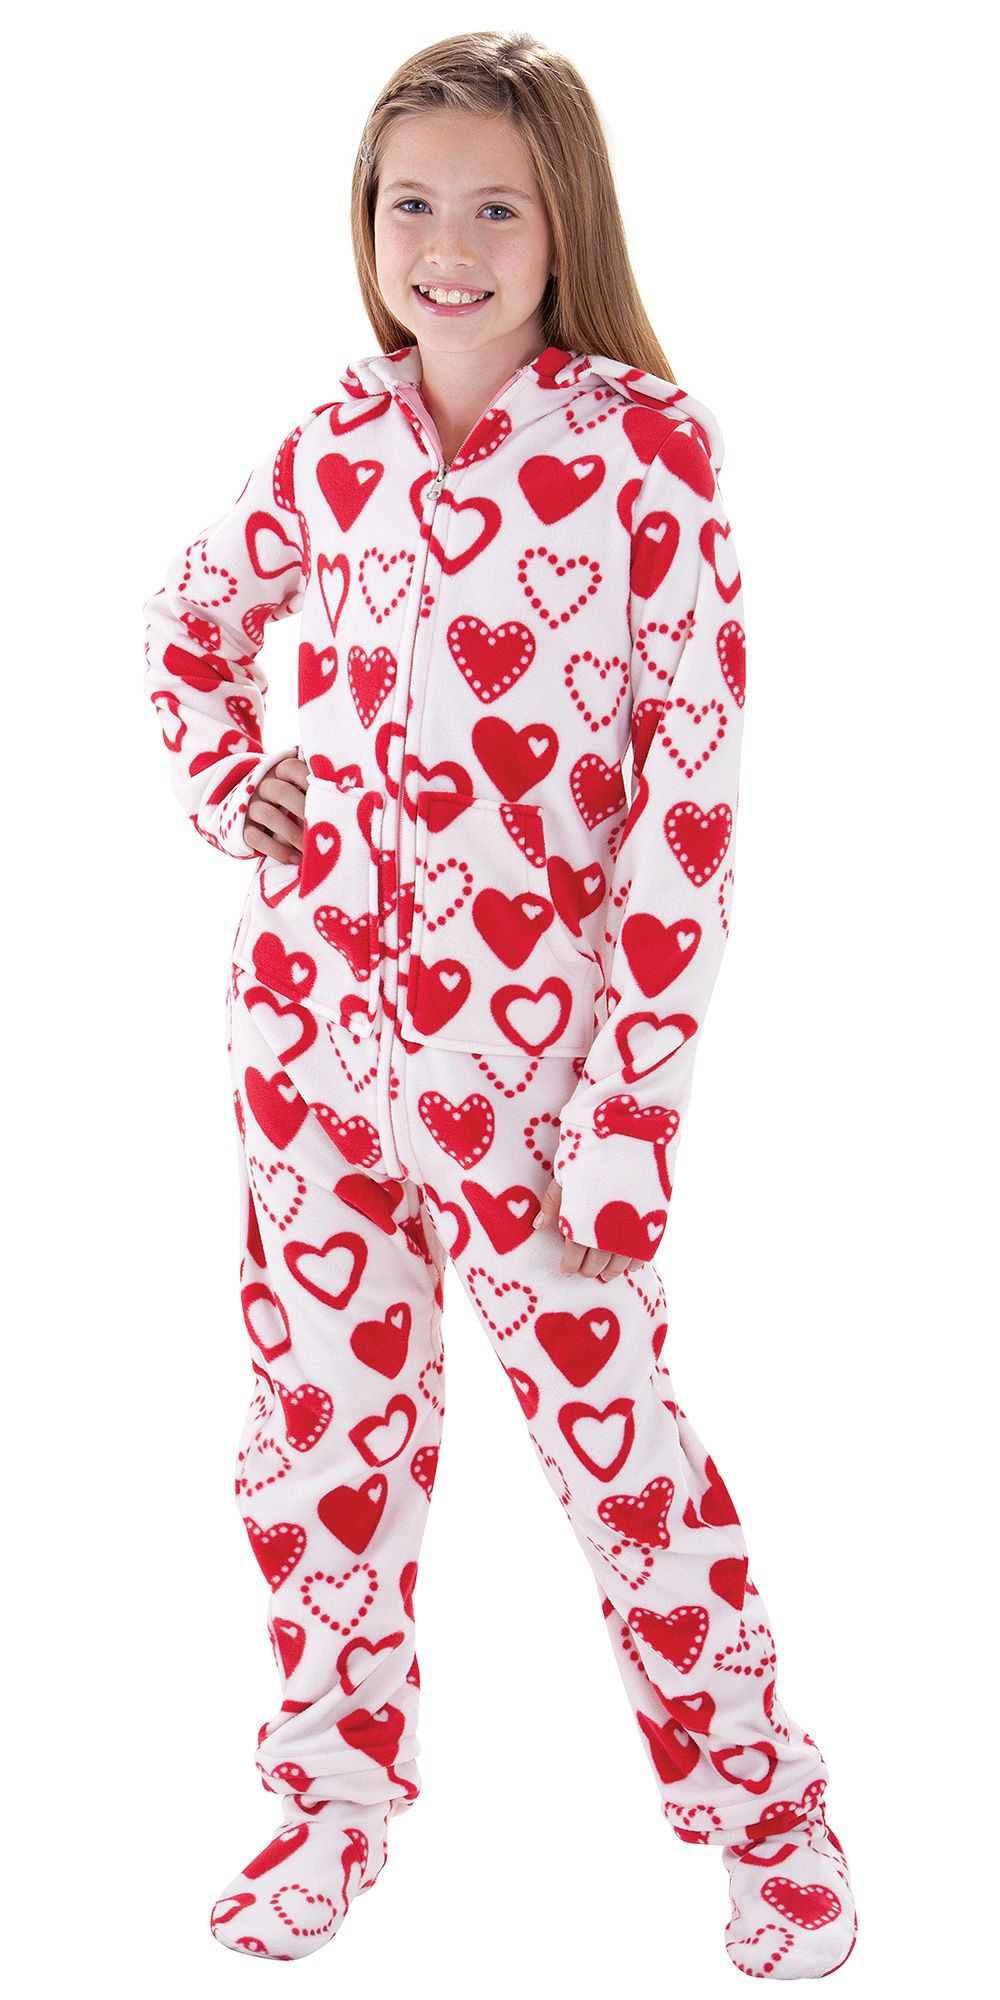 bfa6a7a2b footie pajamas for girls 10 and up